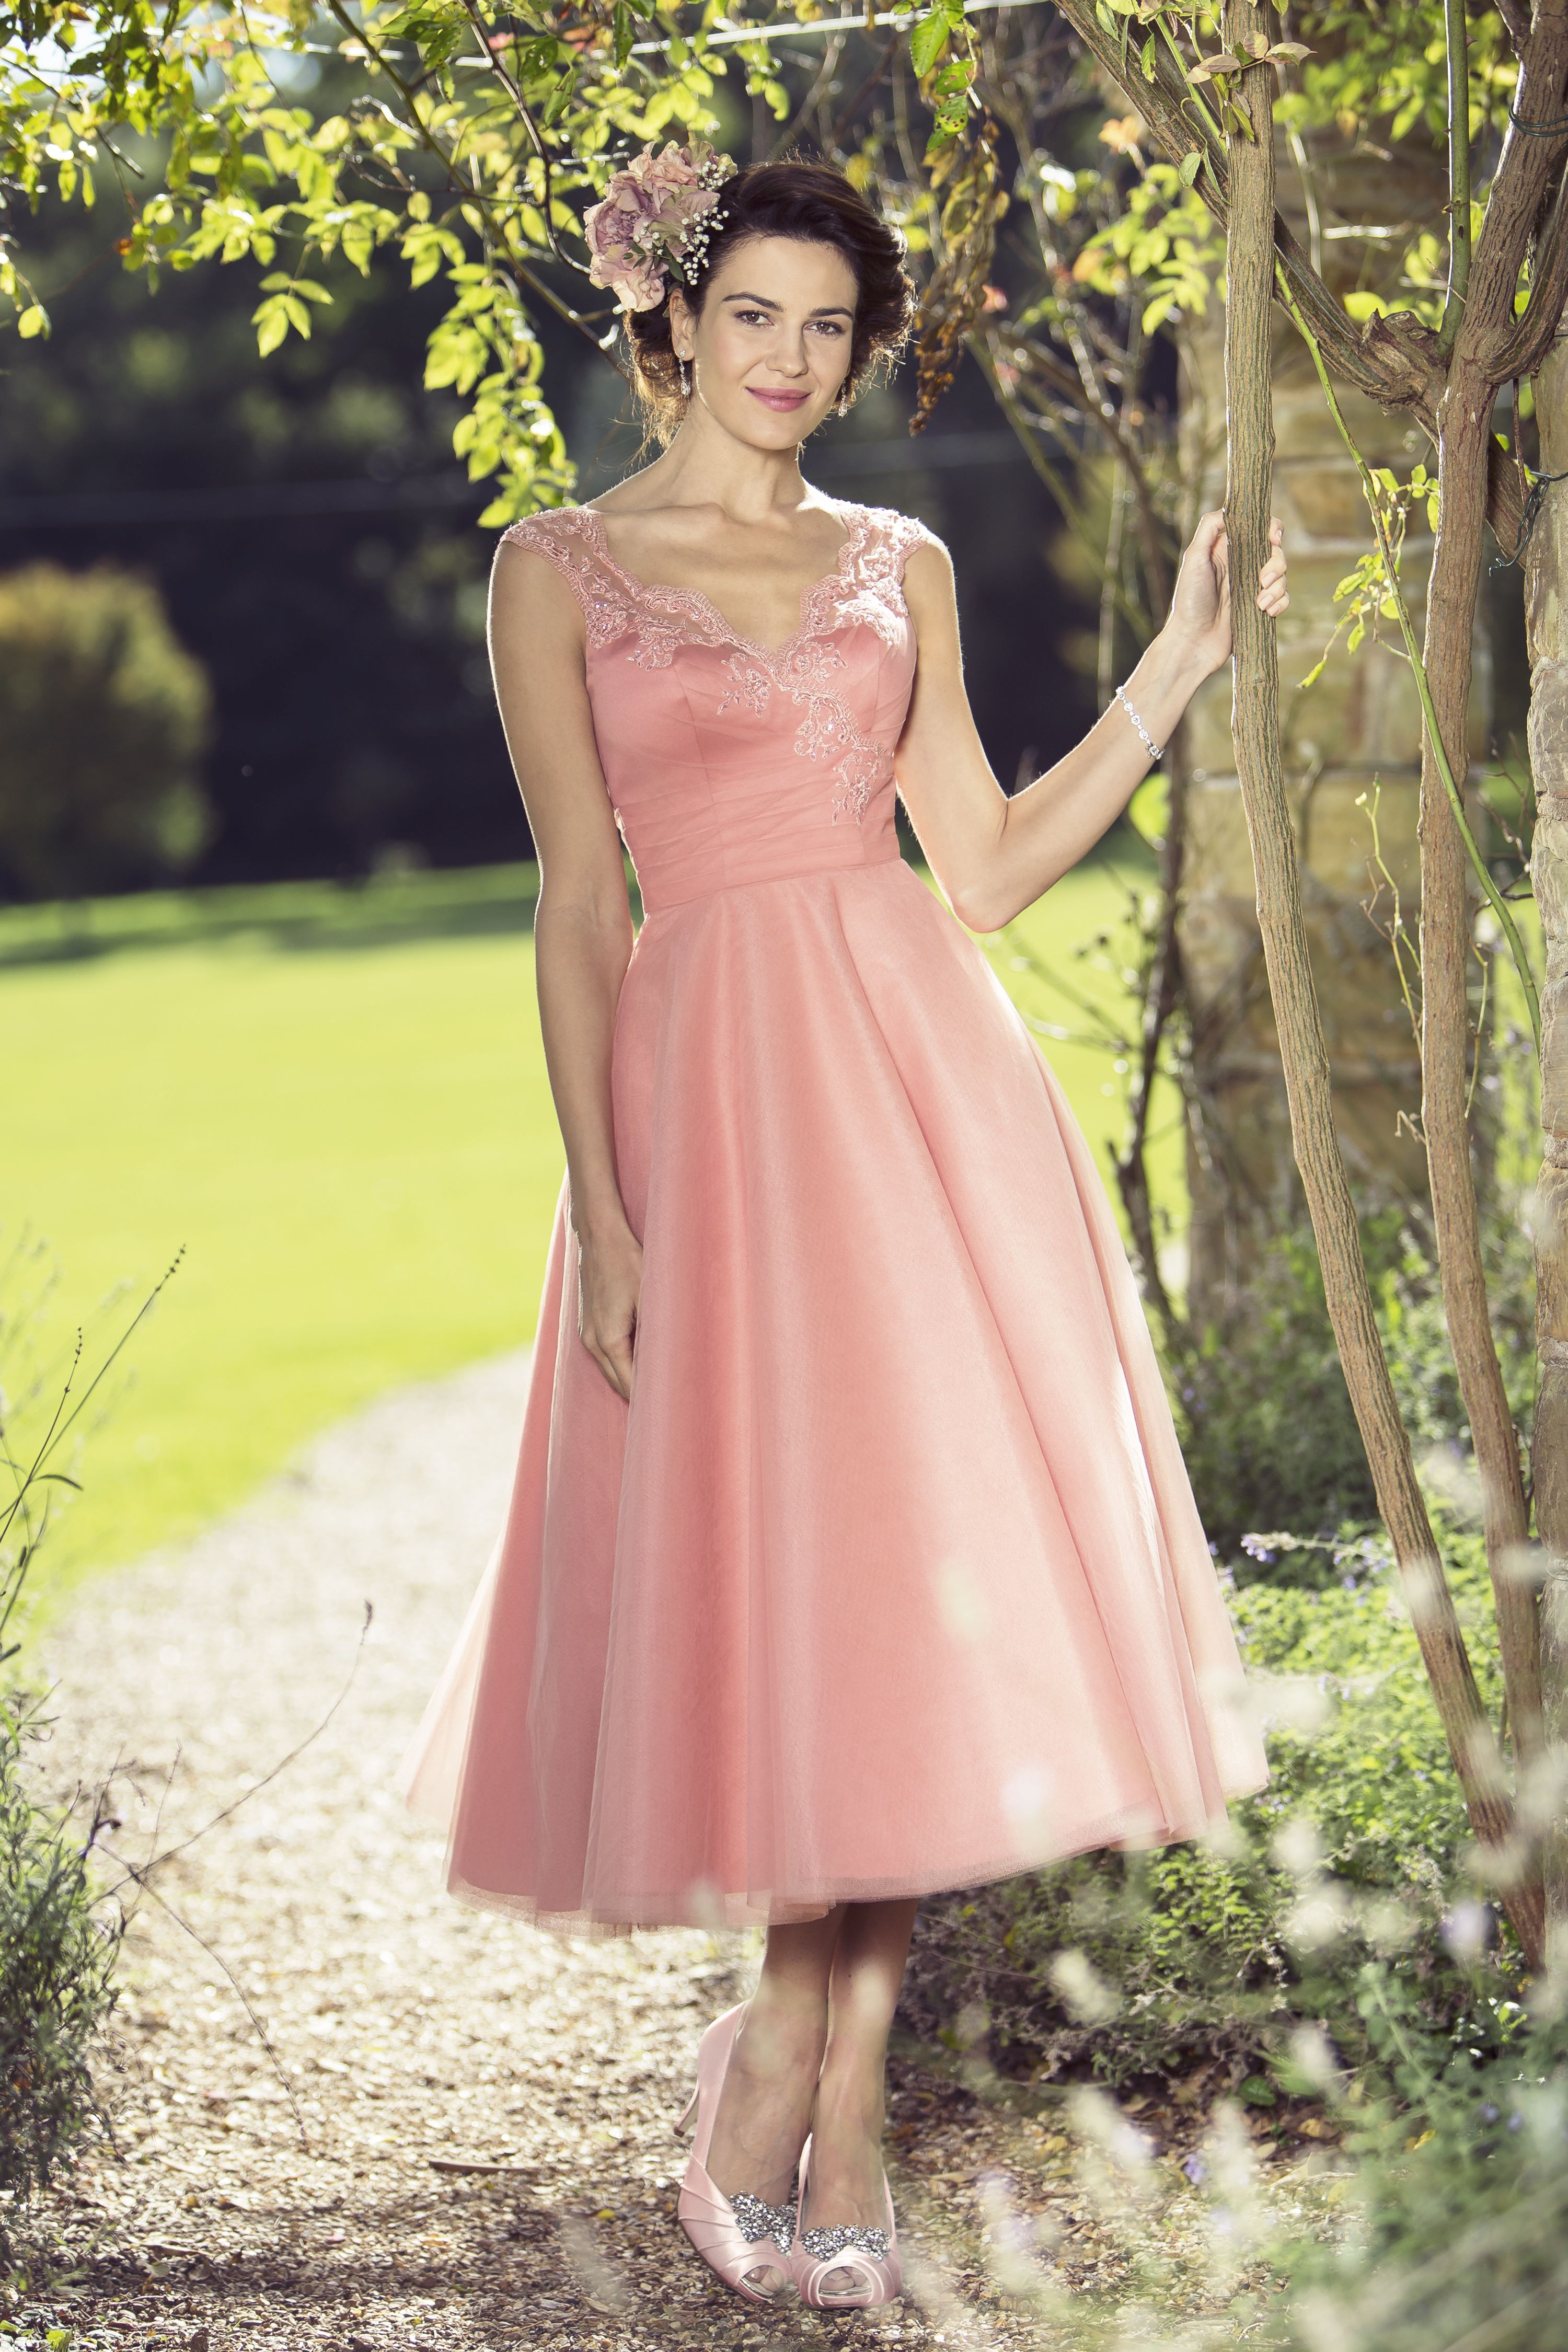 M688 new 2016 collection in stores from november short and m688 new 2016 collection in stores from november short and sassy tea length bridesmaid dress with embellished lace shoulder and back detail ombrellifo Gallery